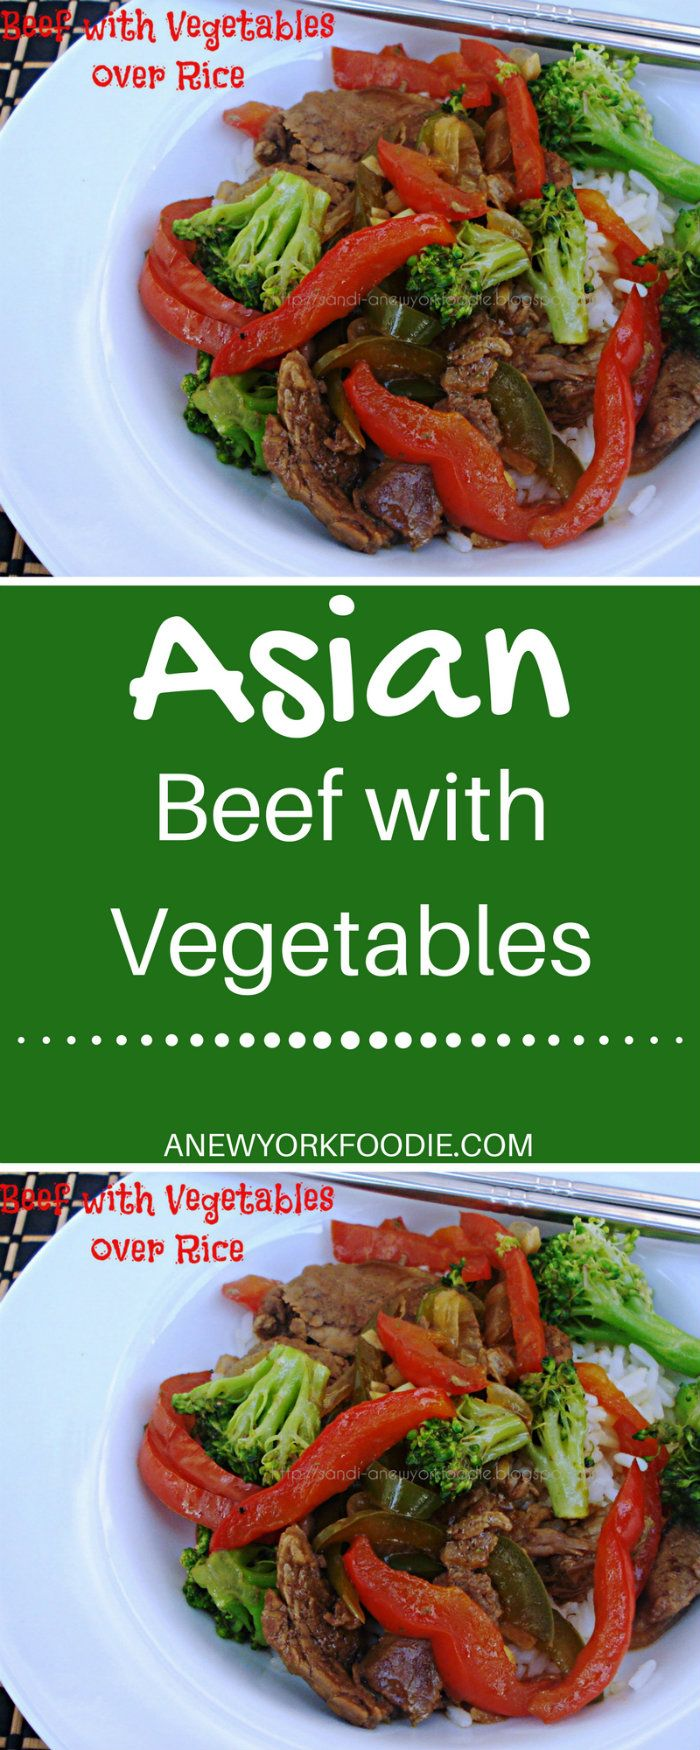 Asian Beef with Vegetables.  An easy to make Asian beef dish with fresh healthy vegetables that is full of flavor.  #asian #beef #vegetables #recipes